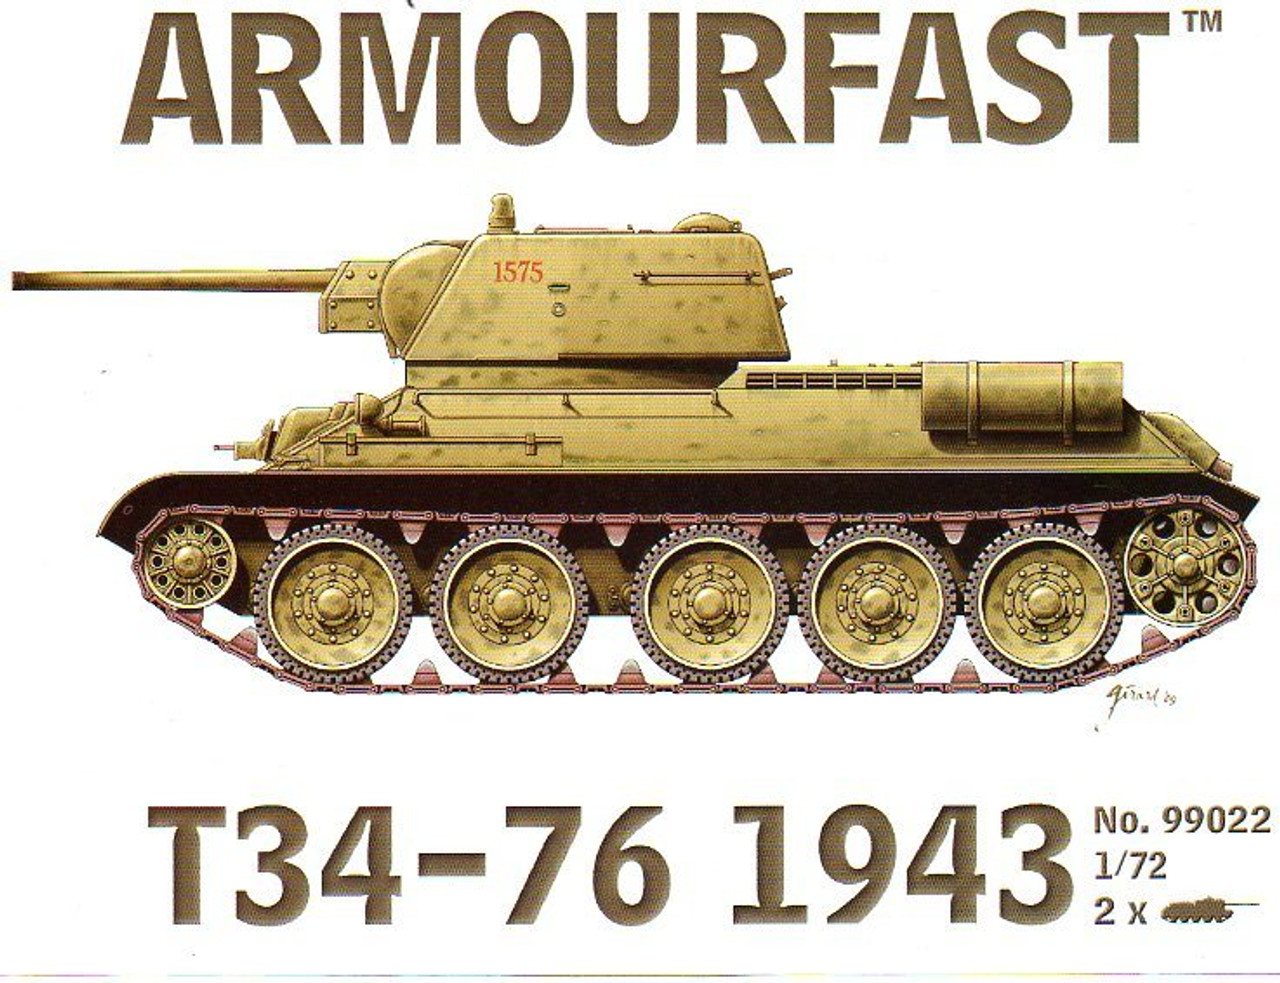 <p>Armourfast 99022 T34-76 1943 1:72 Scale Model Kit</p>